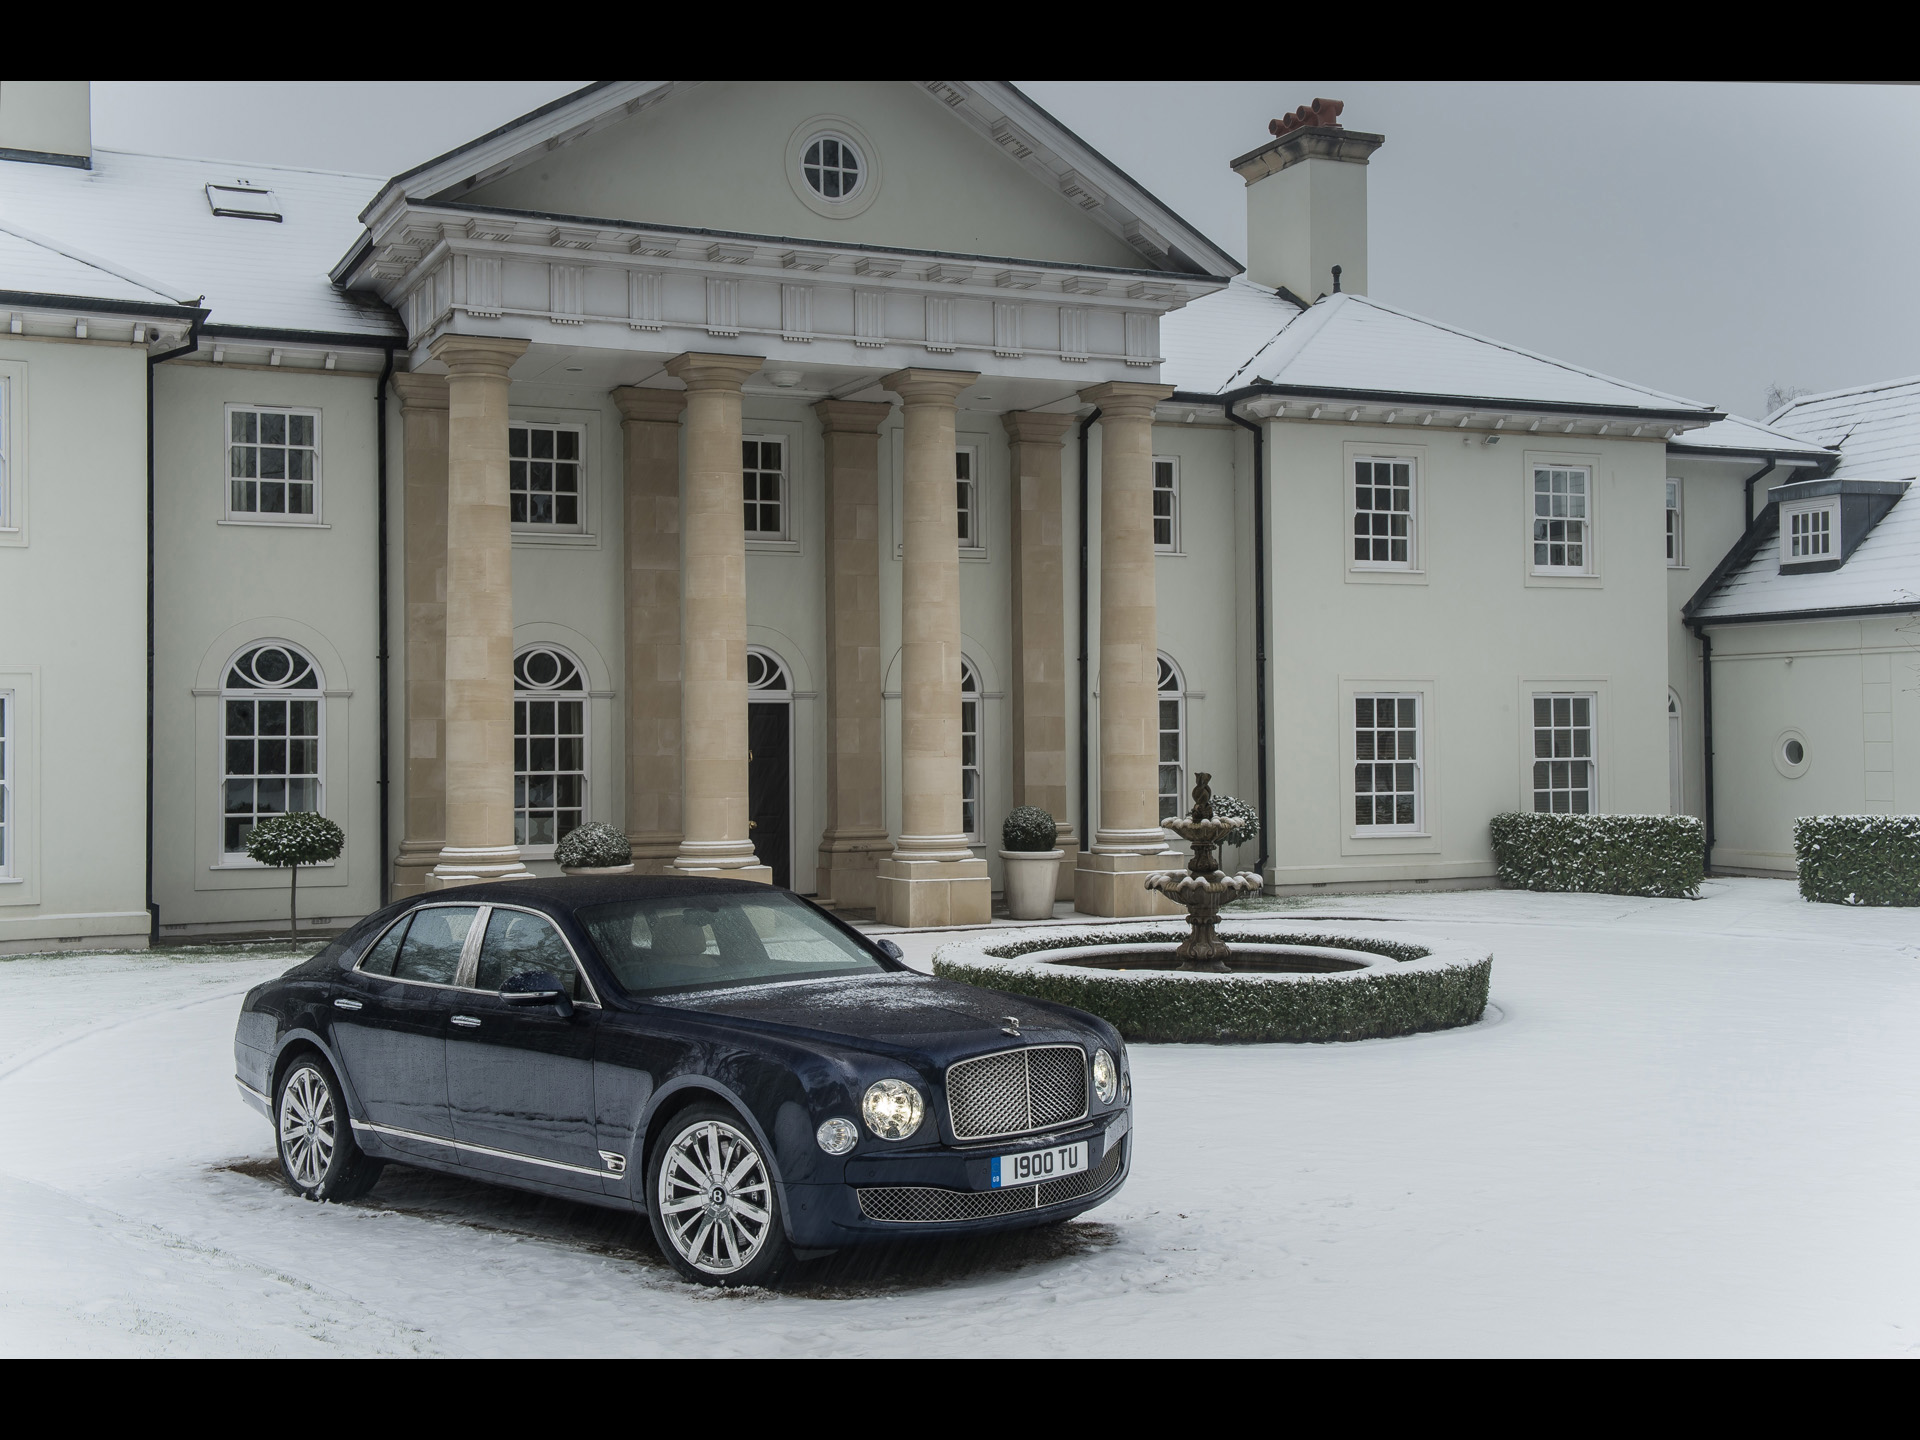 click to free download the wallpaper--Royal Car Images of Bentley Mulsanne, Stopping in Snow, Nothing Affects Its Beauty 1920X1440 free wallpaper download